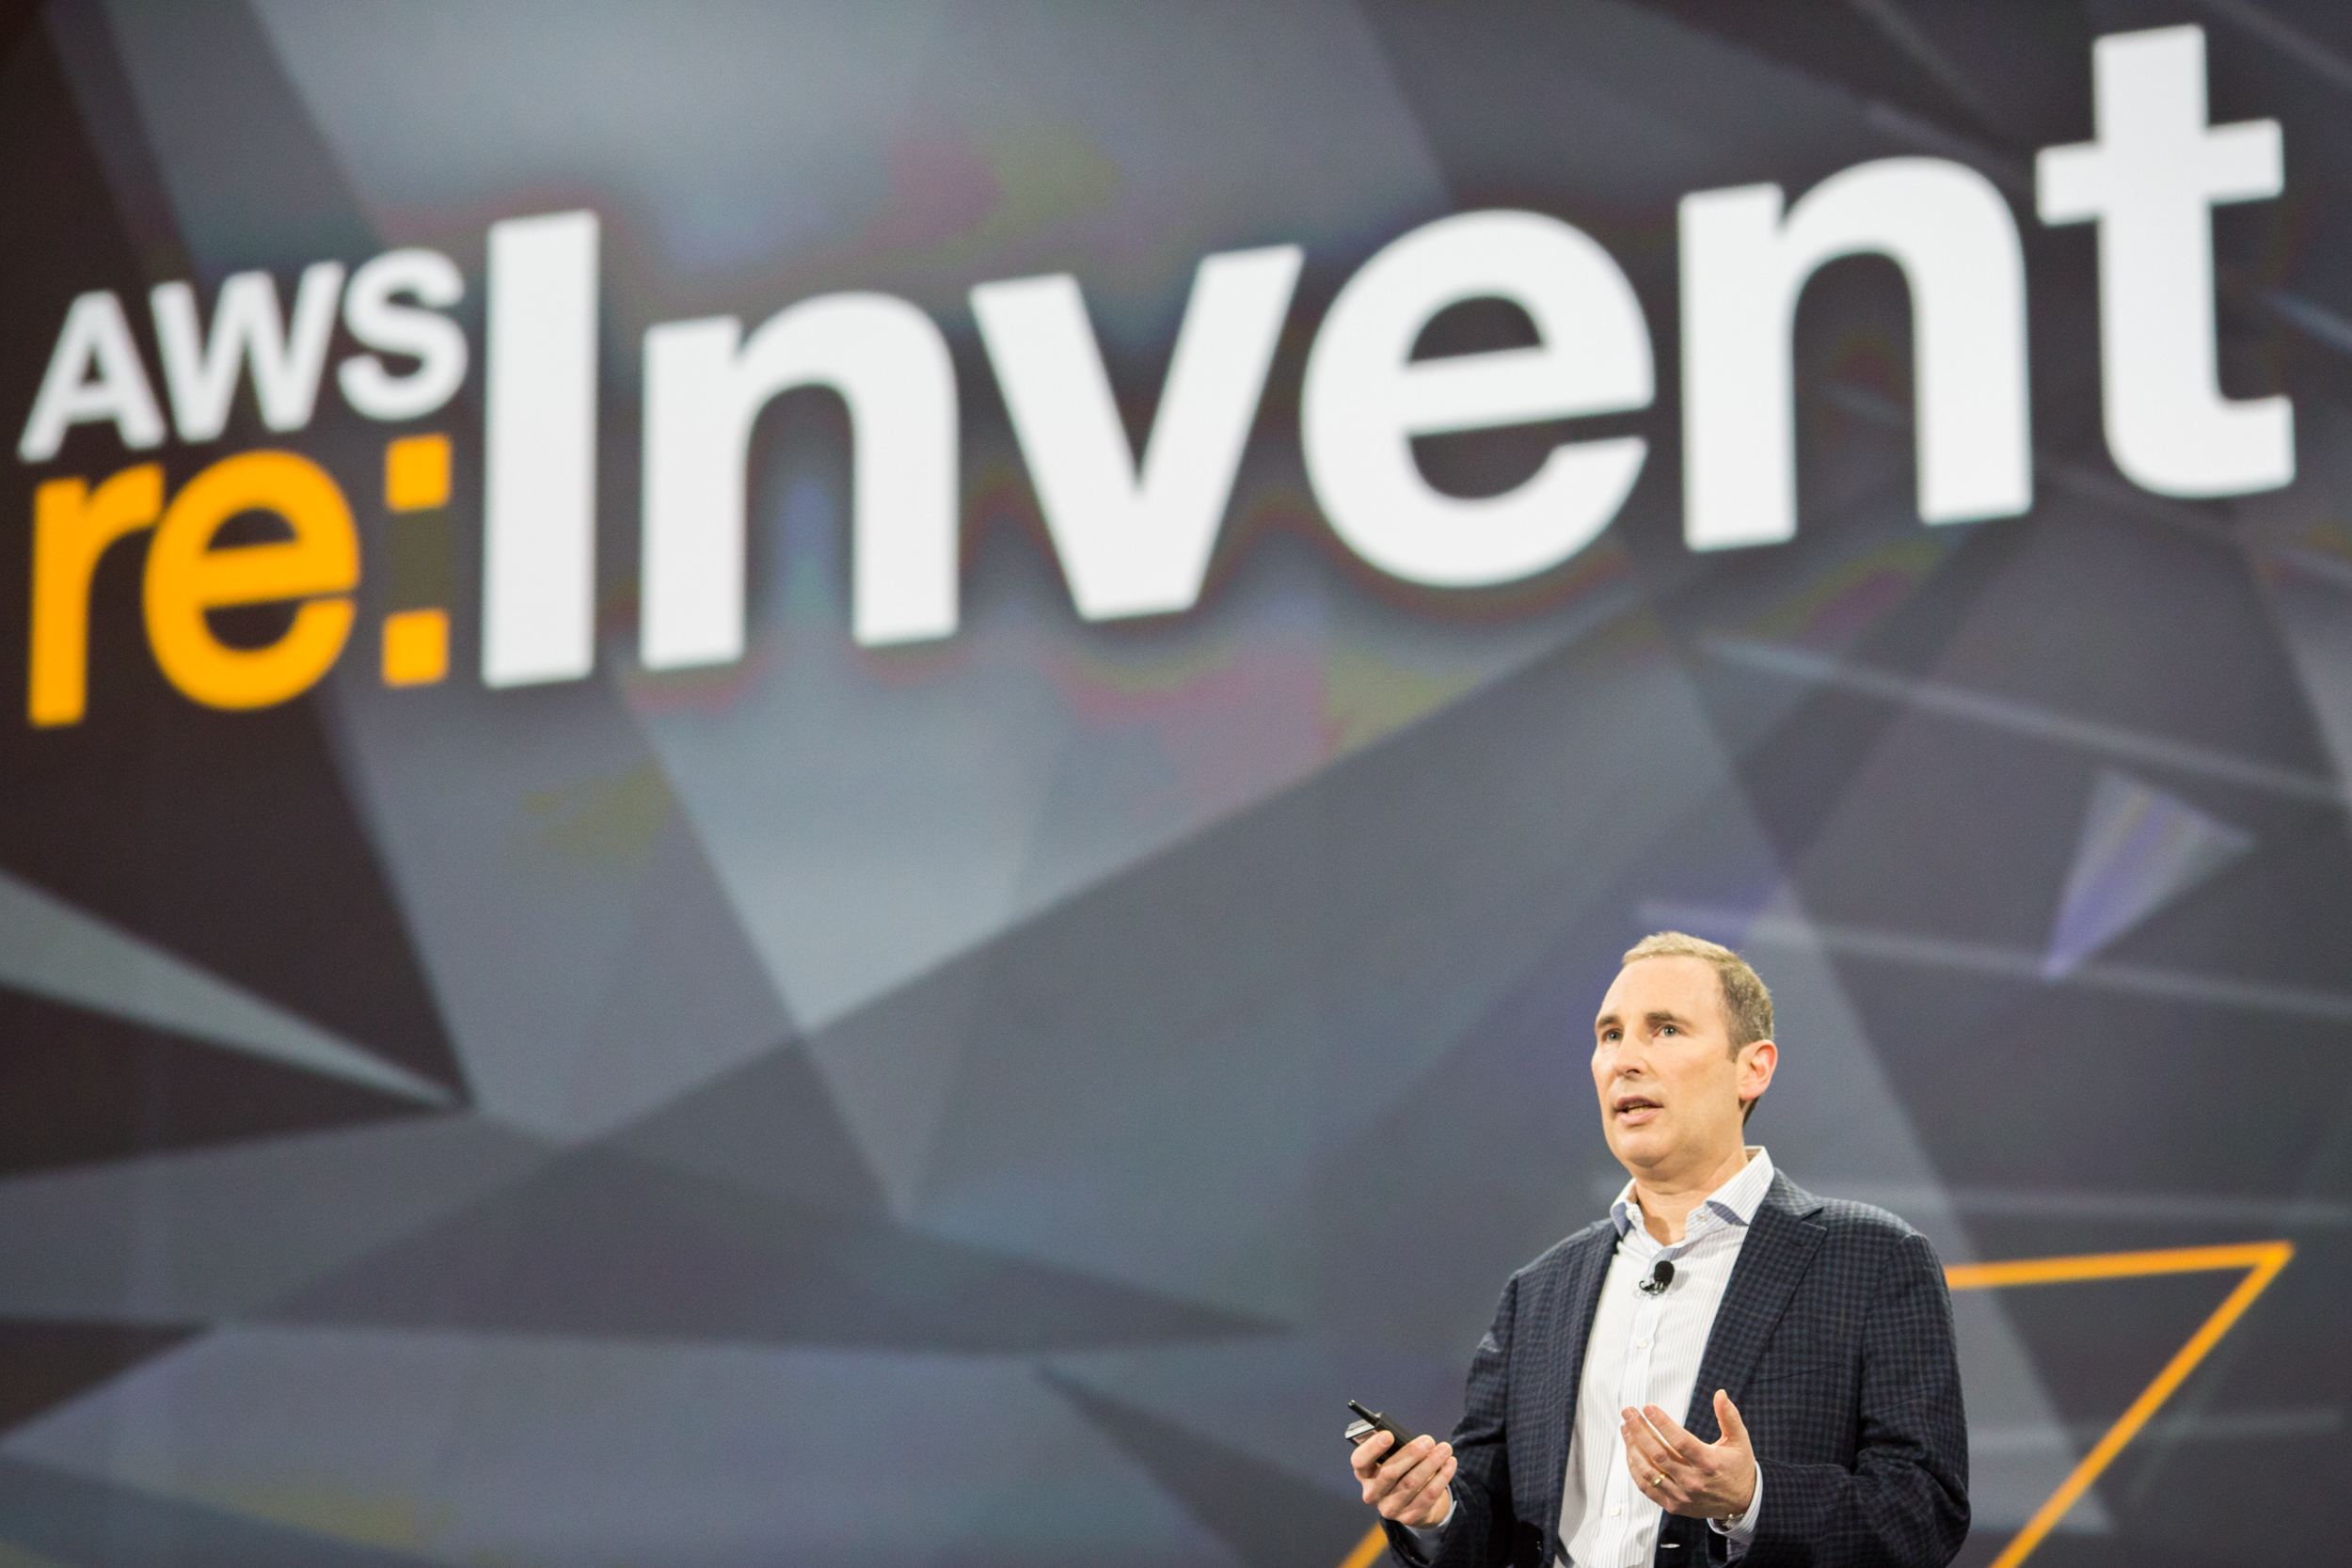 Andy Jassy, SPV AWS, speaking at AWS Re:Invent 2014